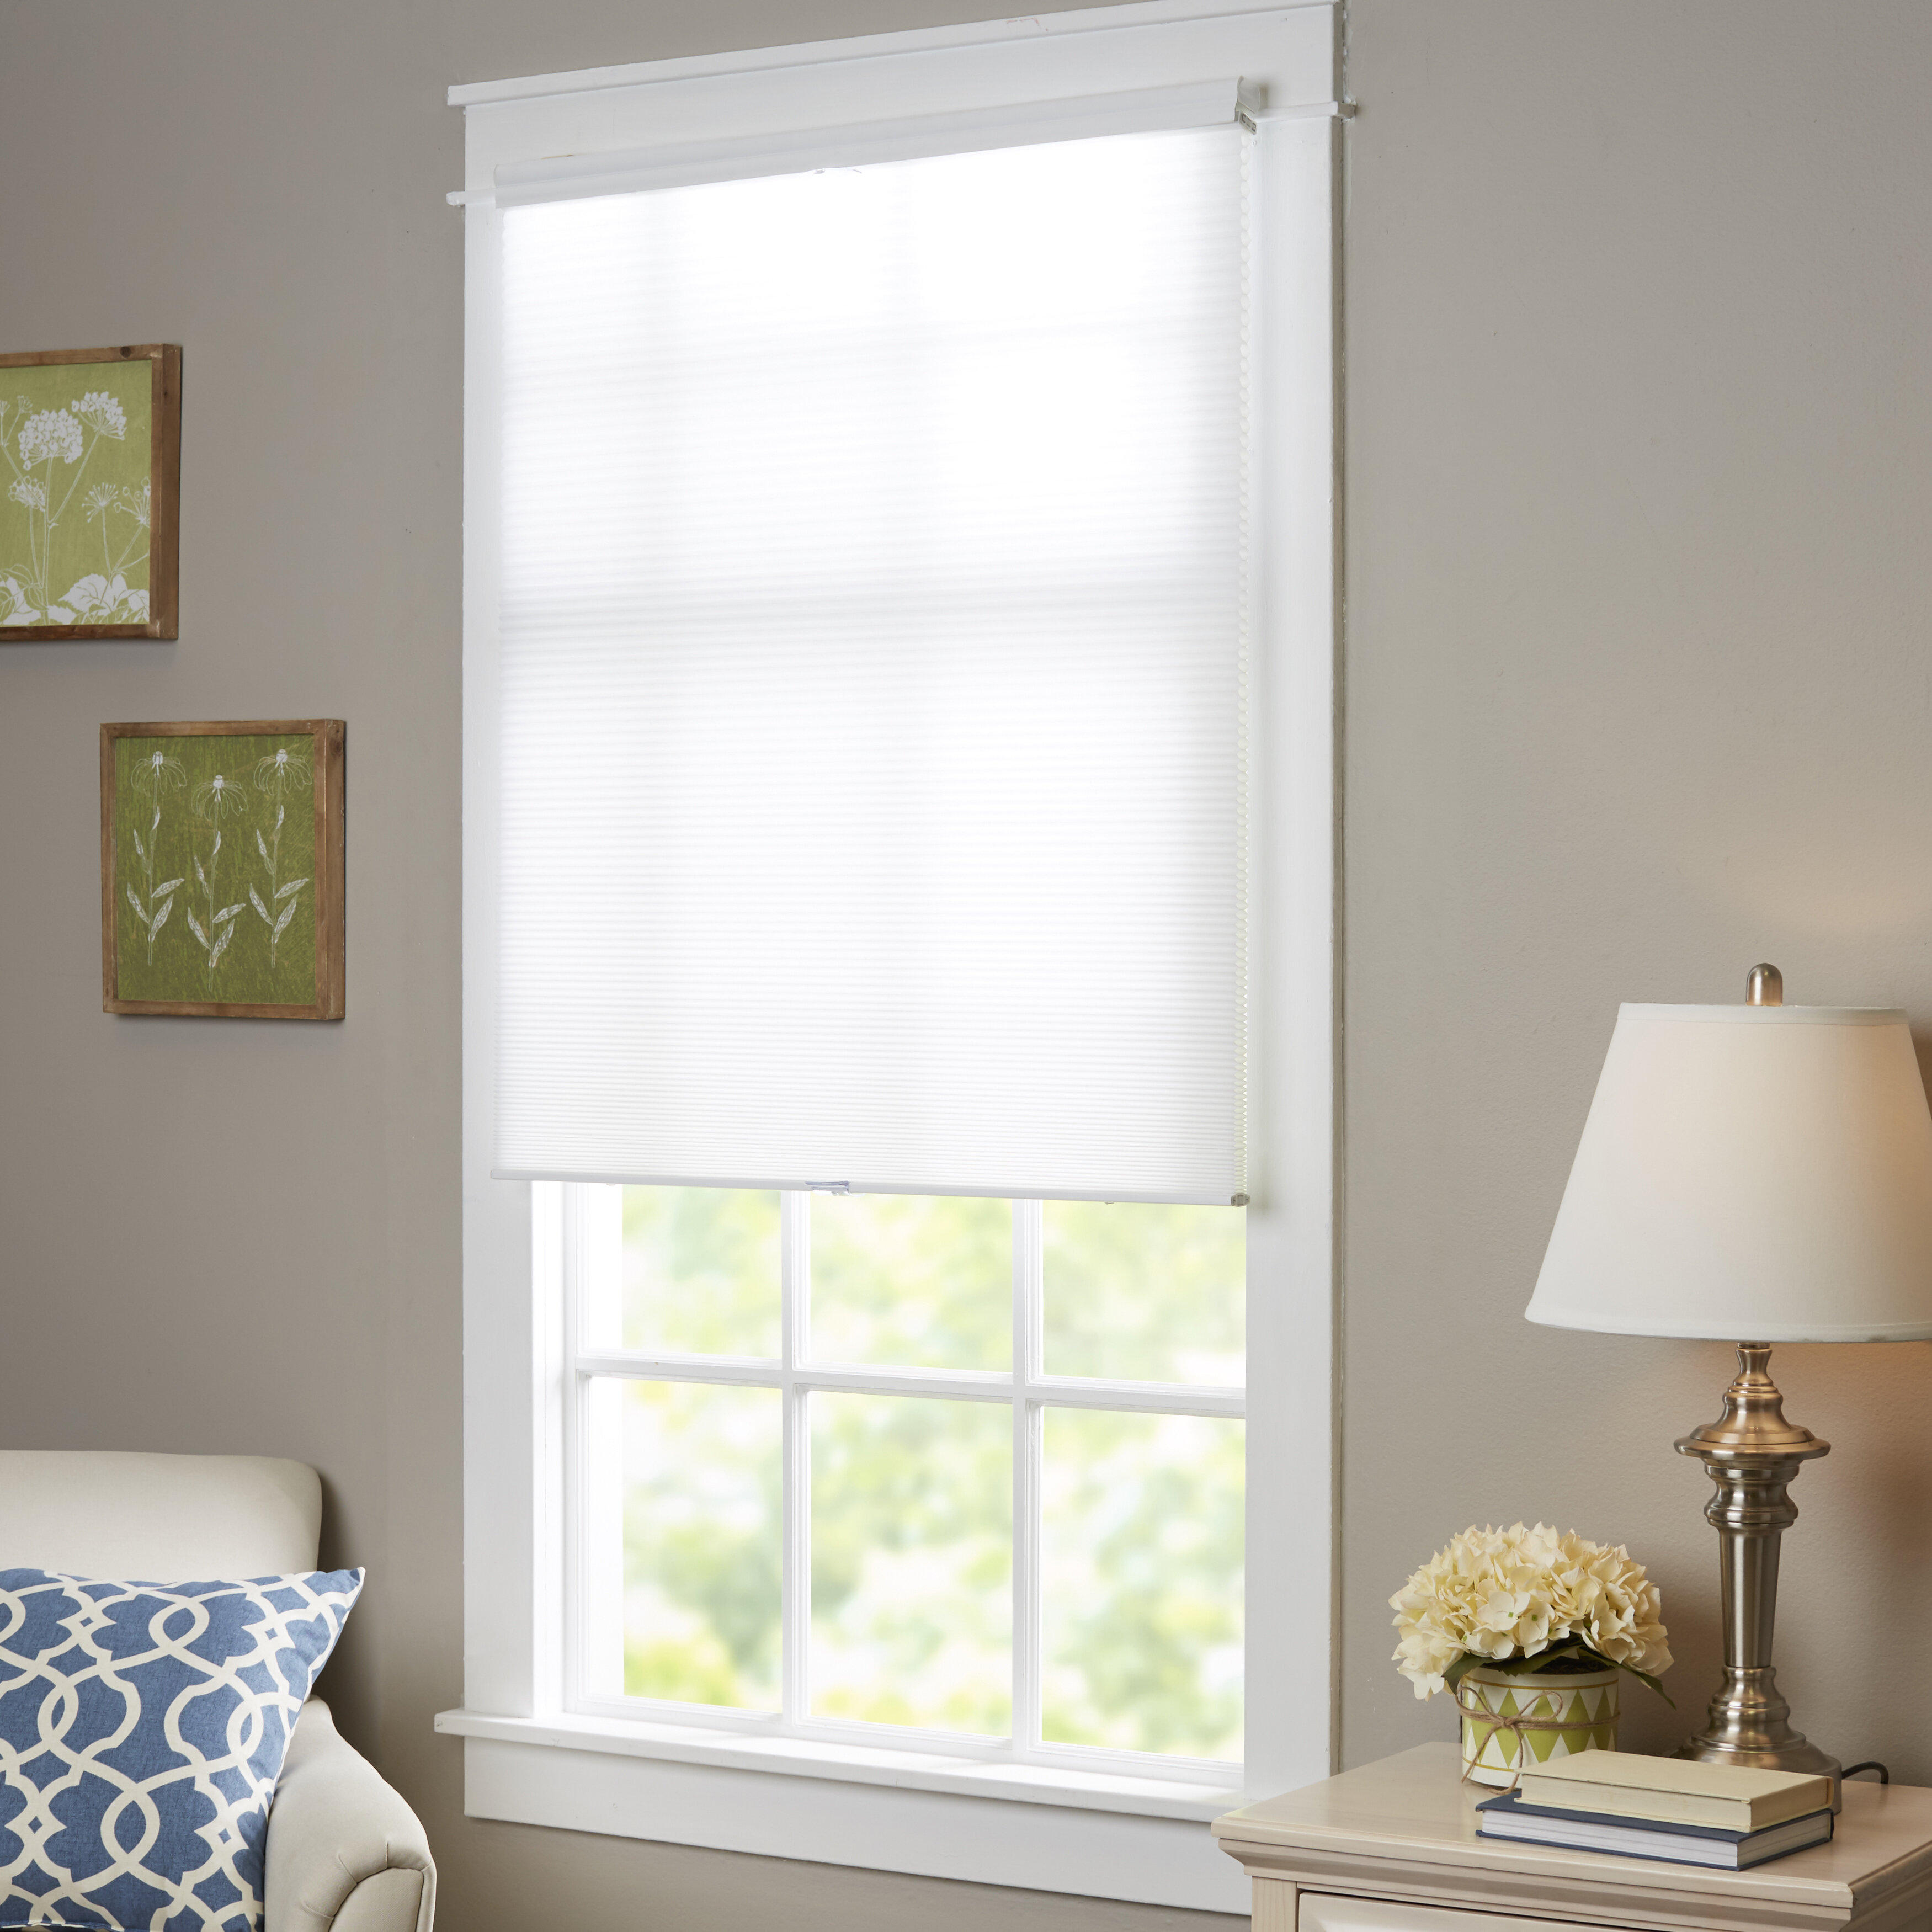 hyman window driftwood cordless shades roman raised blinds product inc bamboo new flattened